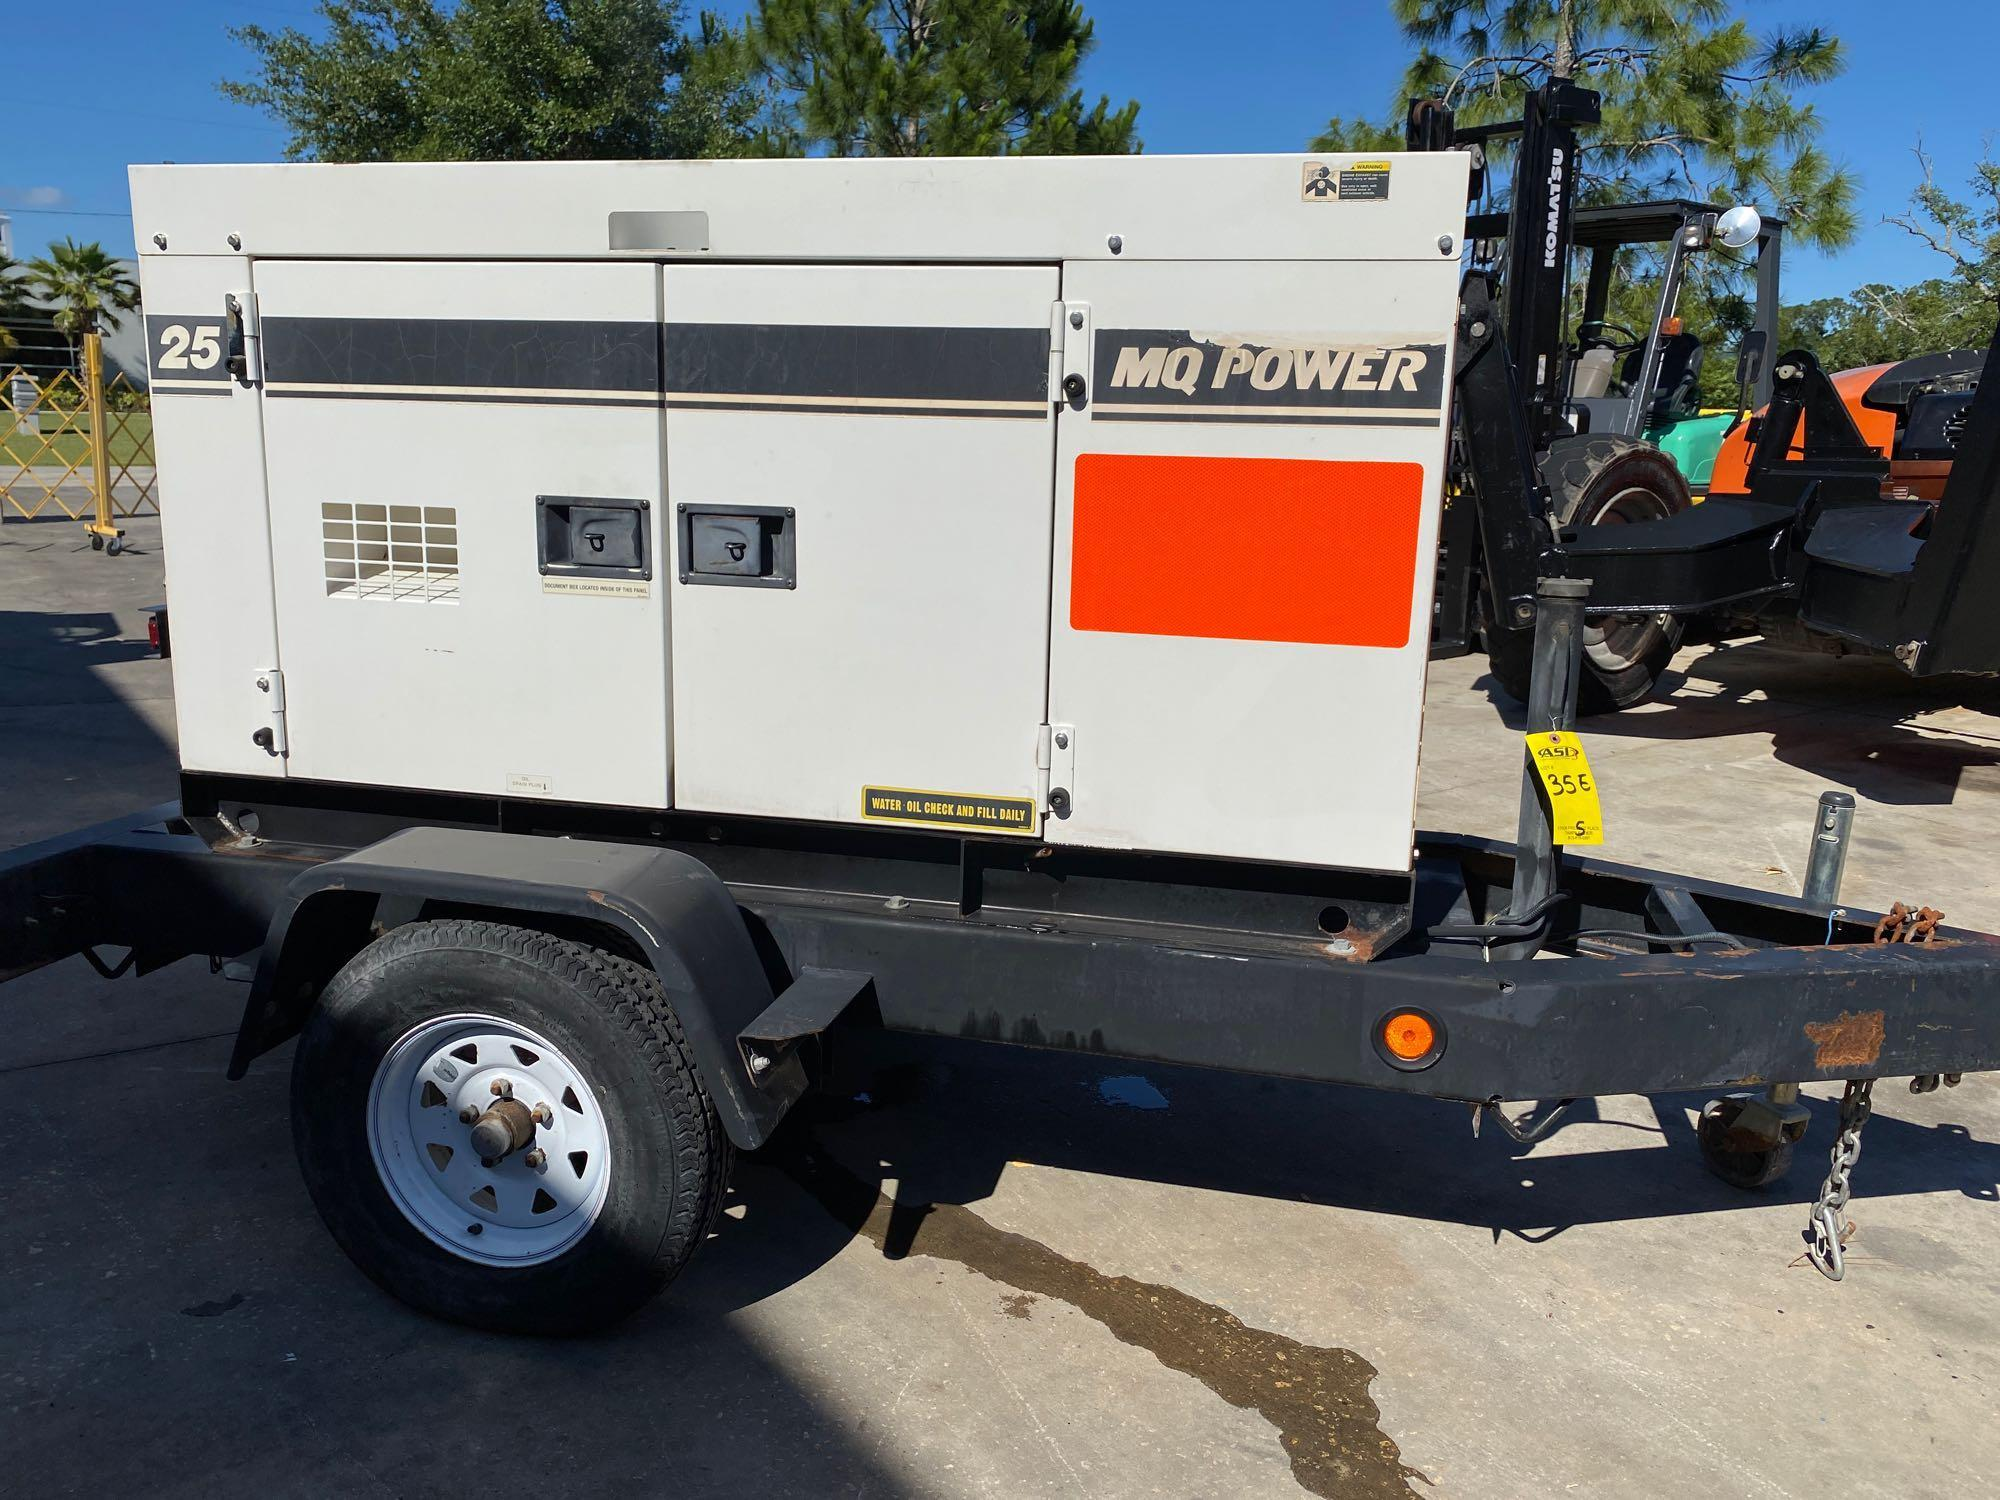 2011/2012 WHISPERWATT MQ POWER DIESEL GENERATOR, TRAILER MOUNTED, 20KW, 25KVA, RUNS AND OPERATES - Image 10 of 19